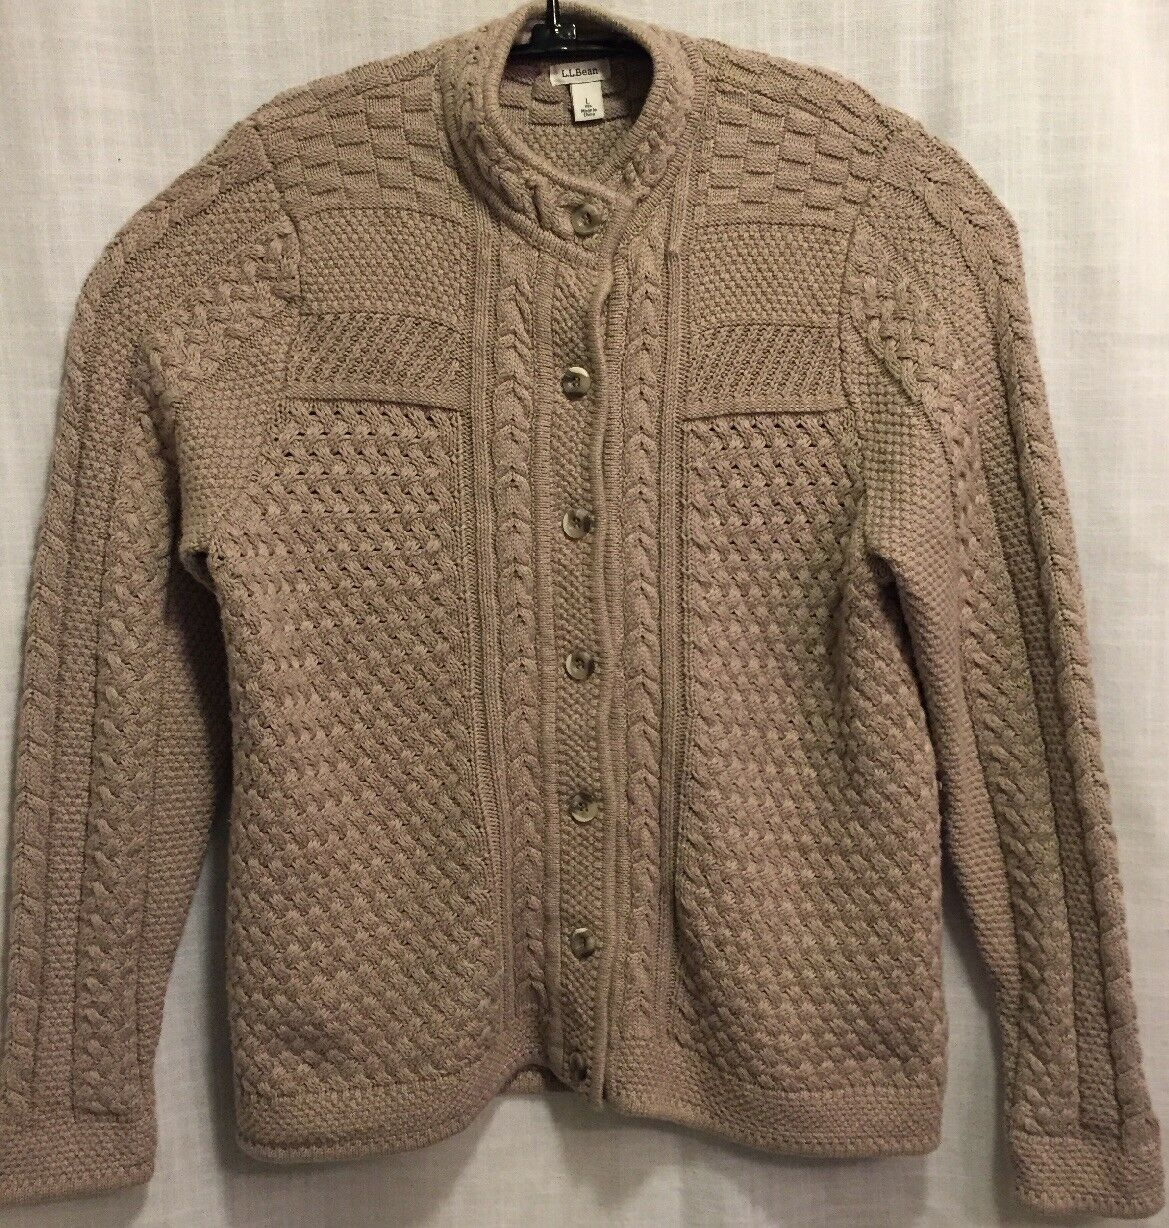 LL BEAN Stitchworks Cardigan Sweater Sz L Beige Heavy knit Button Front